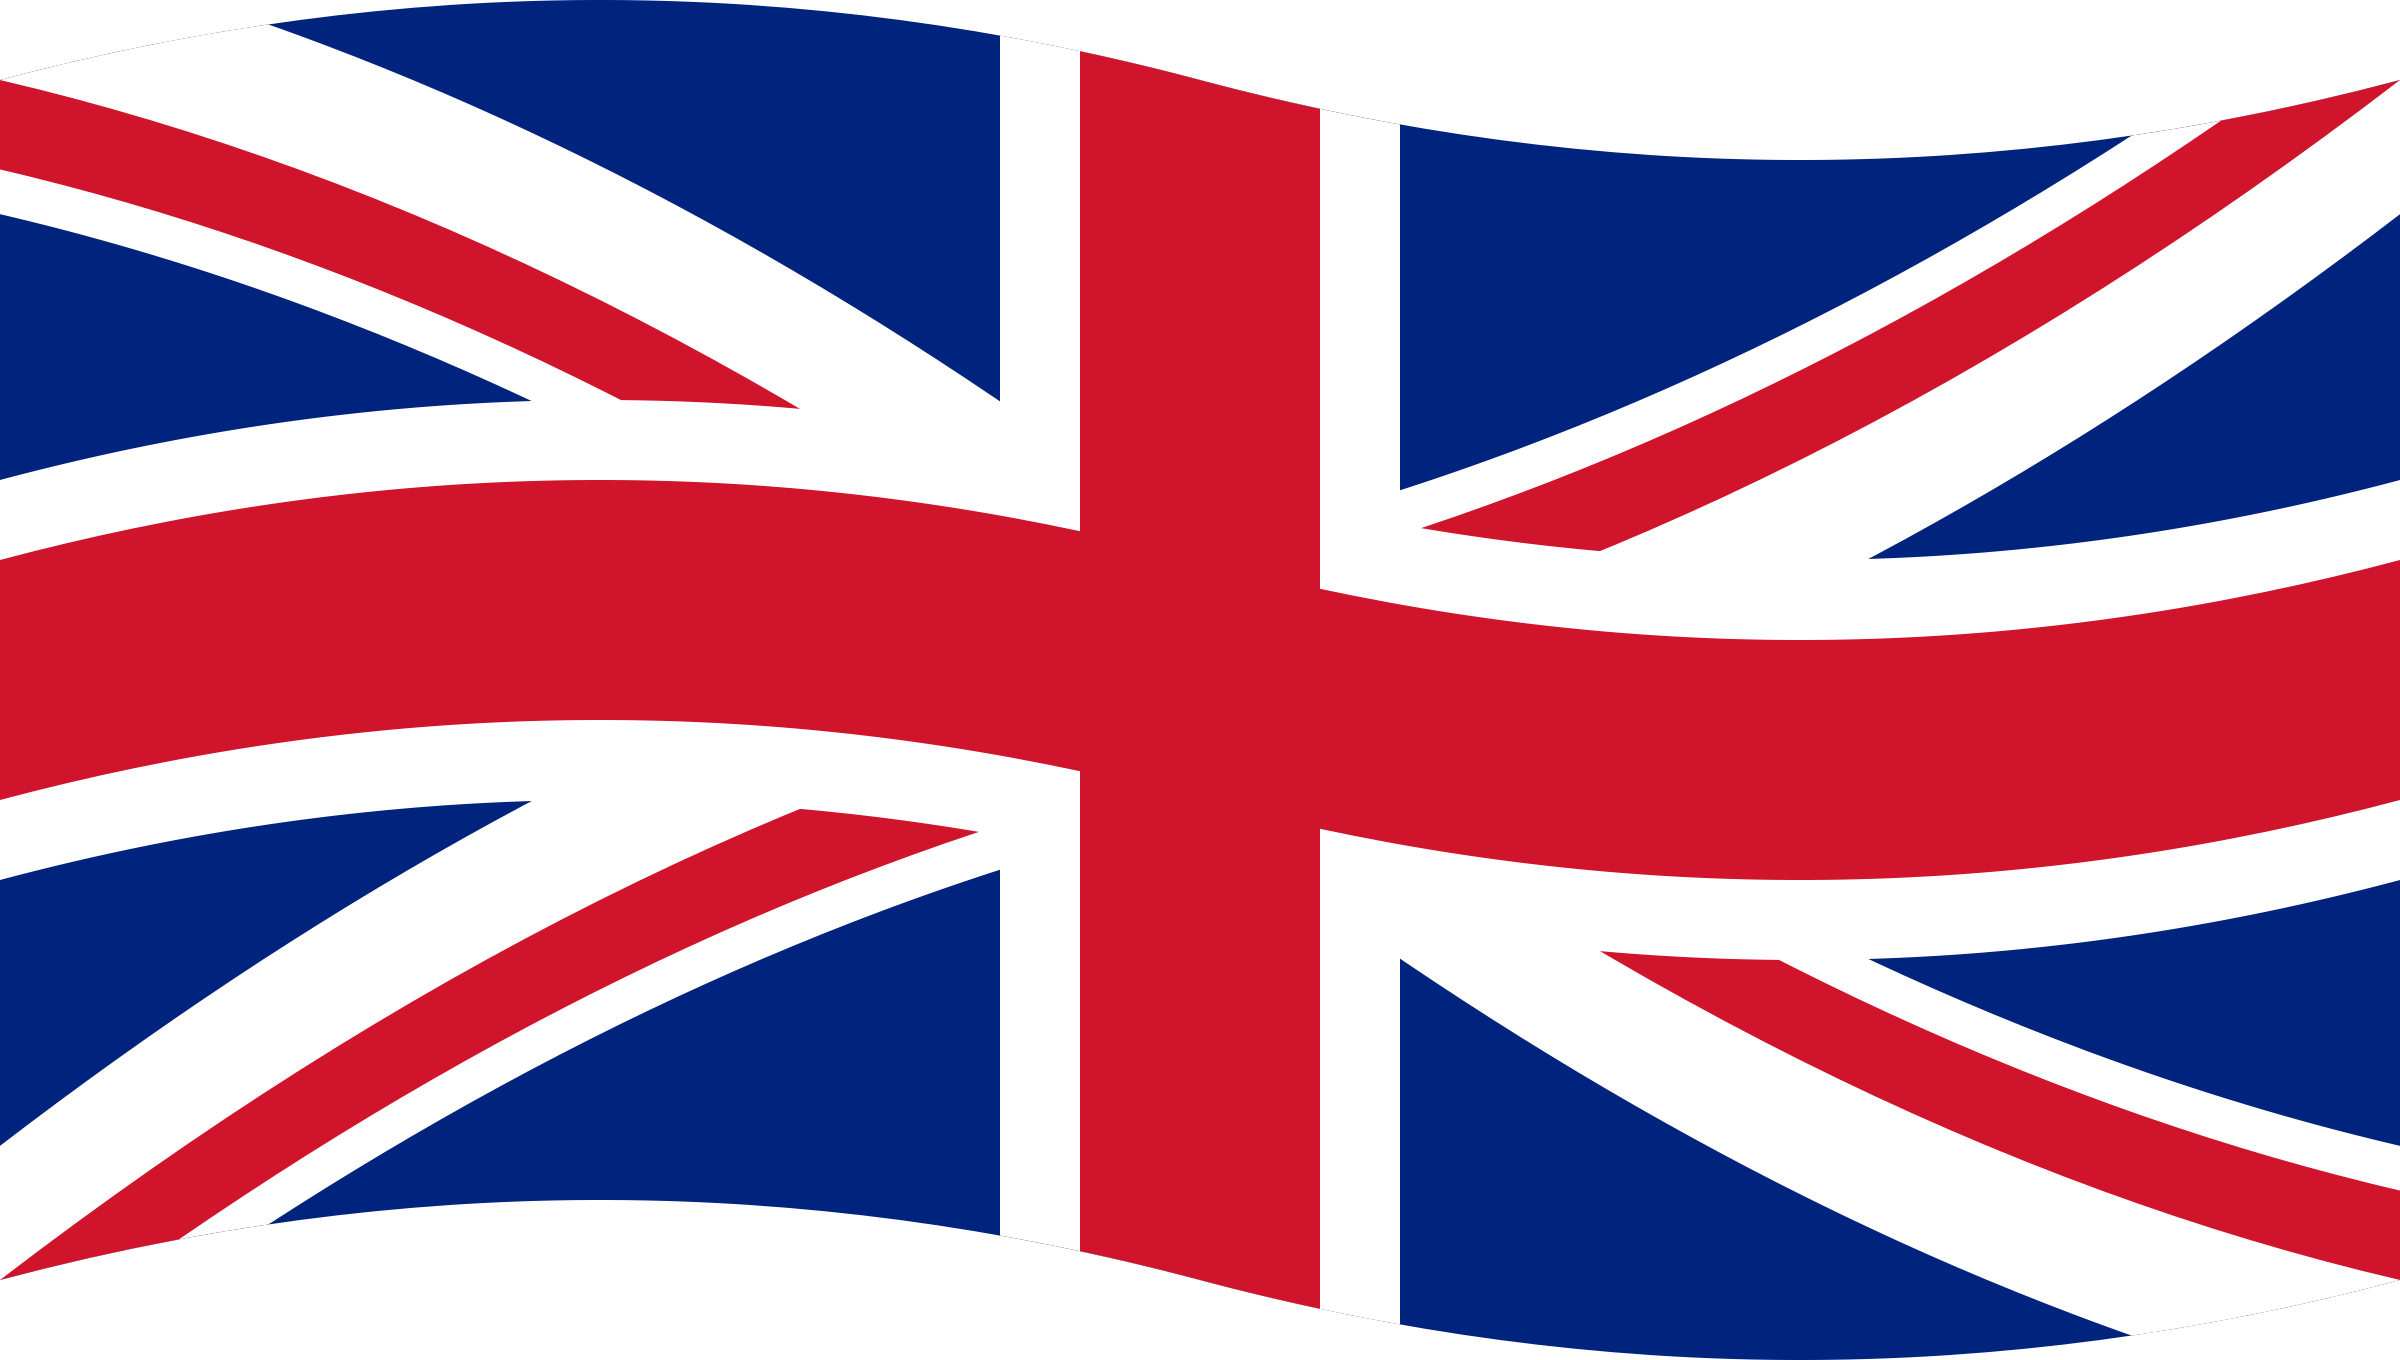 Union Flag by skotan